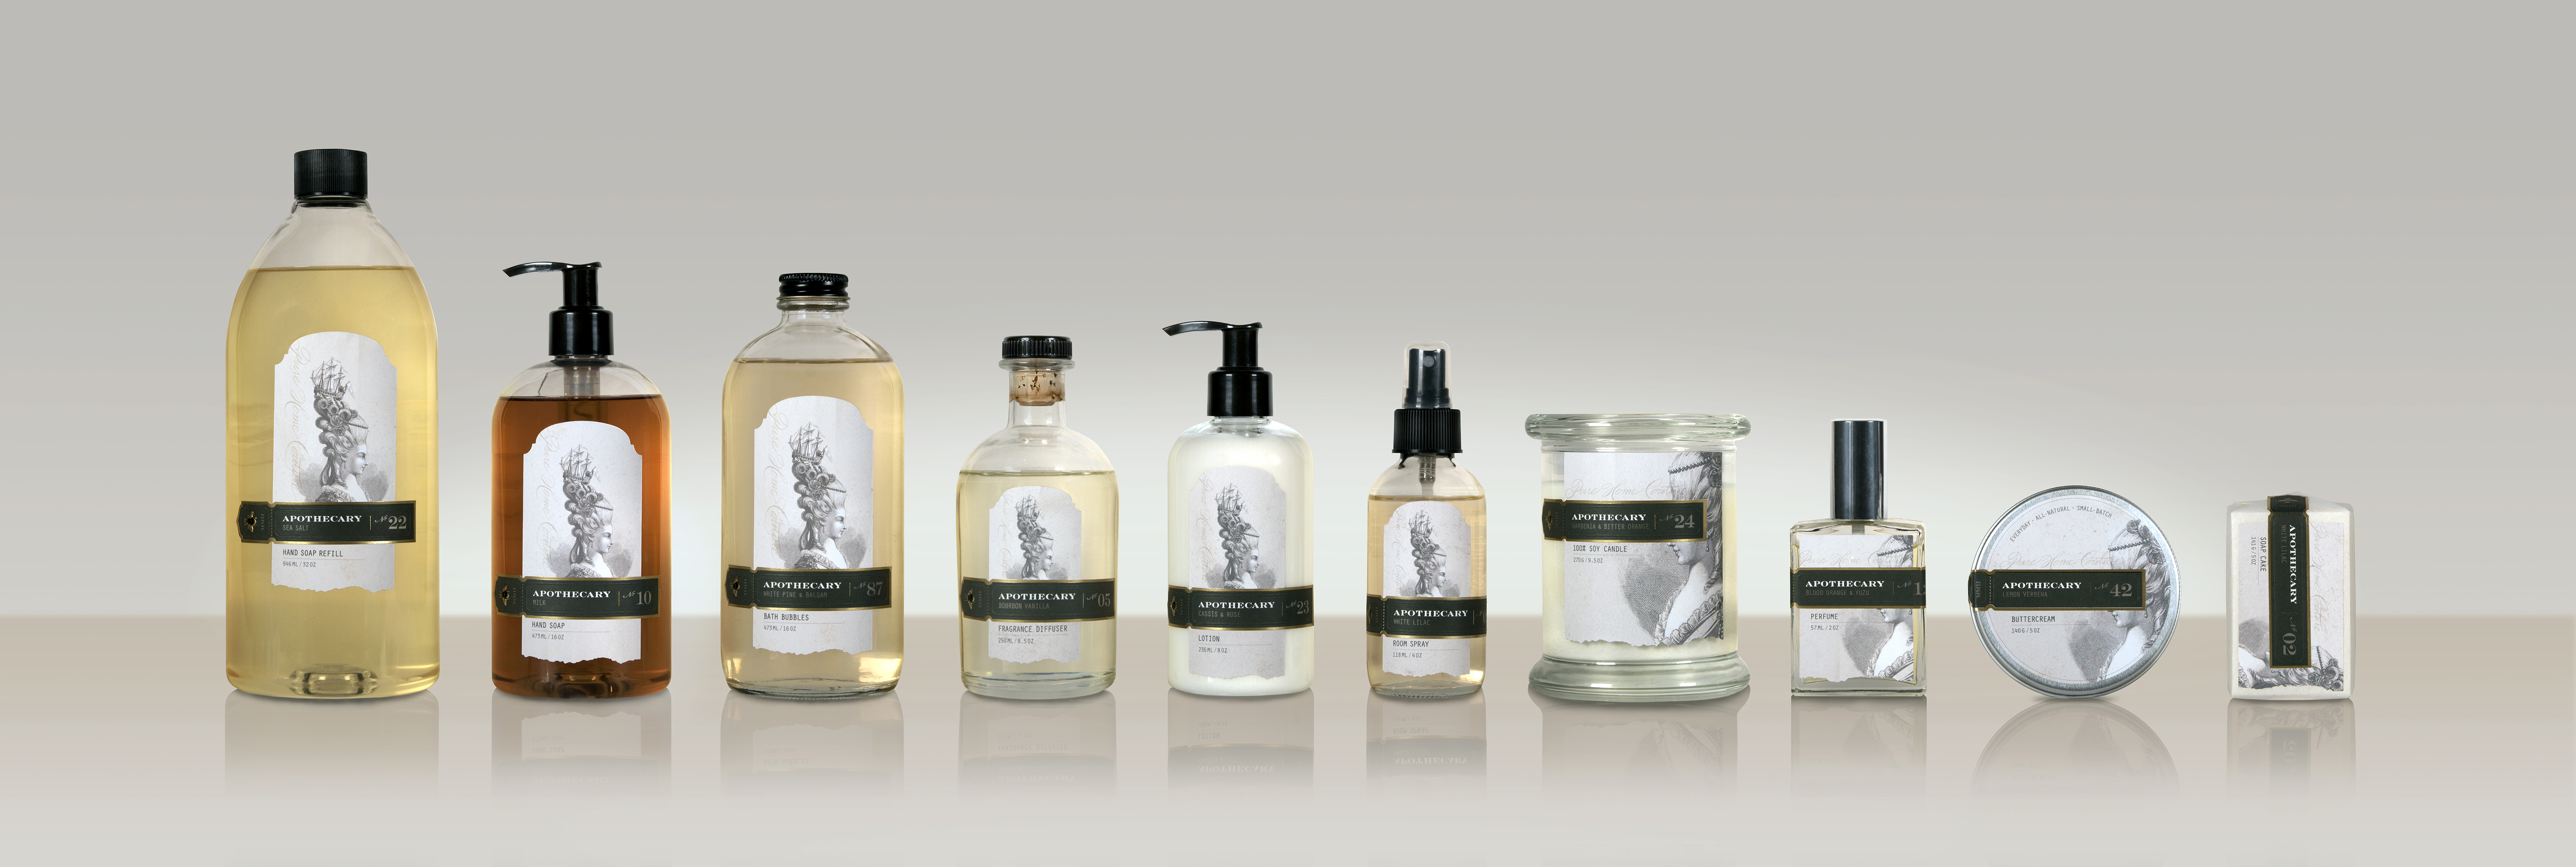 Apothecary Product Line Redesign